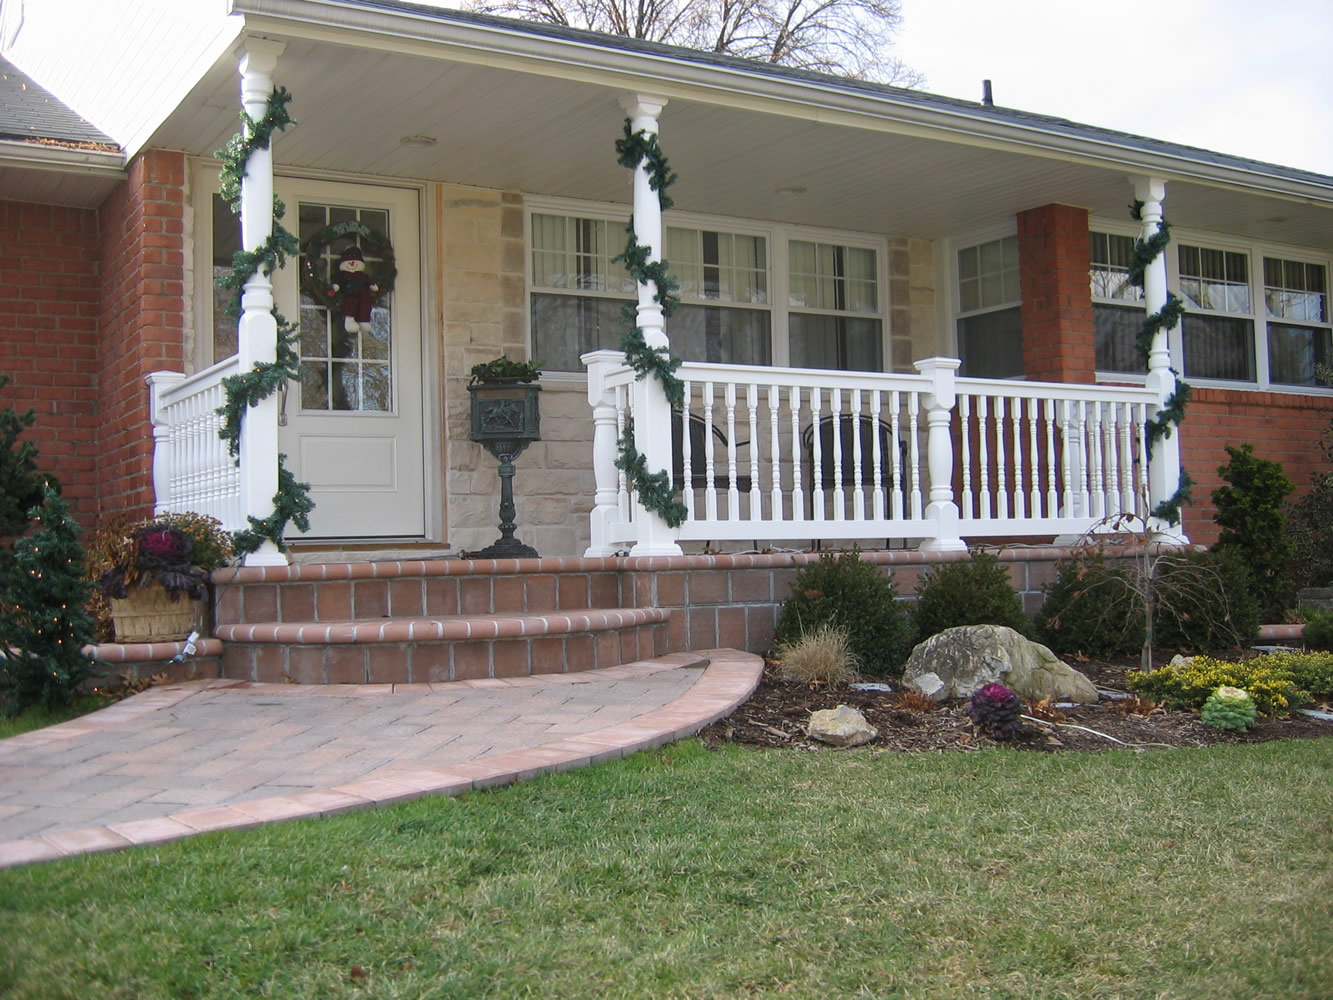 Reno Style PVC Railing with T-rail Tops and Heritage Colonial Railing Posts